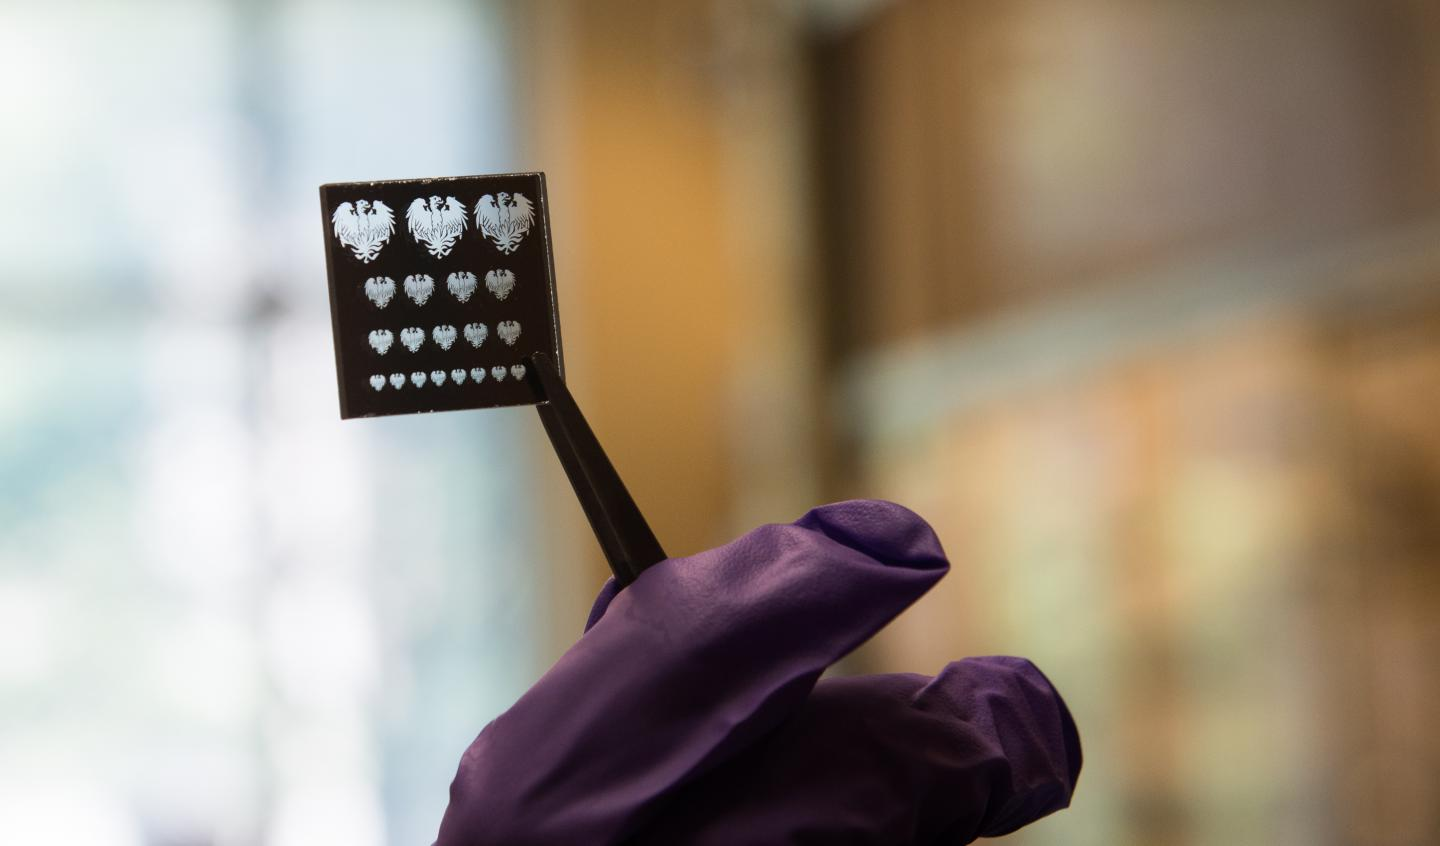 A 'mask' or stencil used to pattern nano materials with a new process that promises to make them far easier to make into LEDs, solar cells, transistors and other electronics.